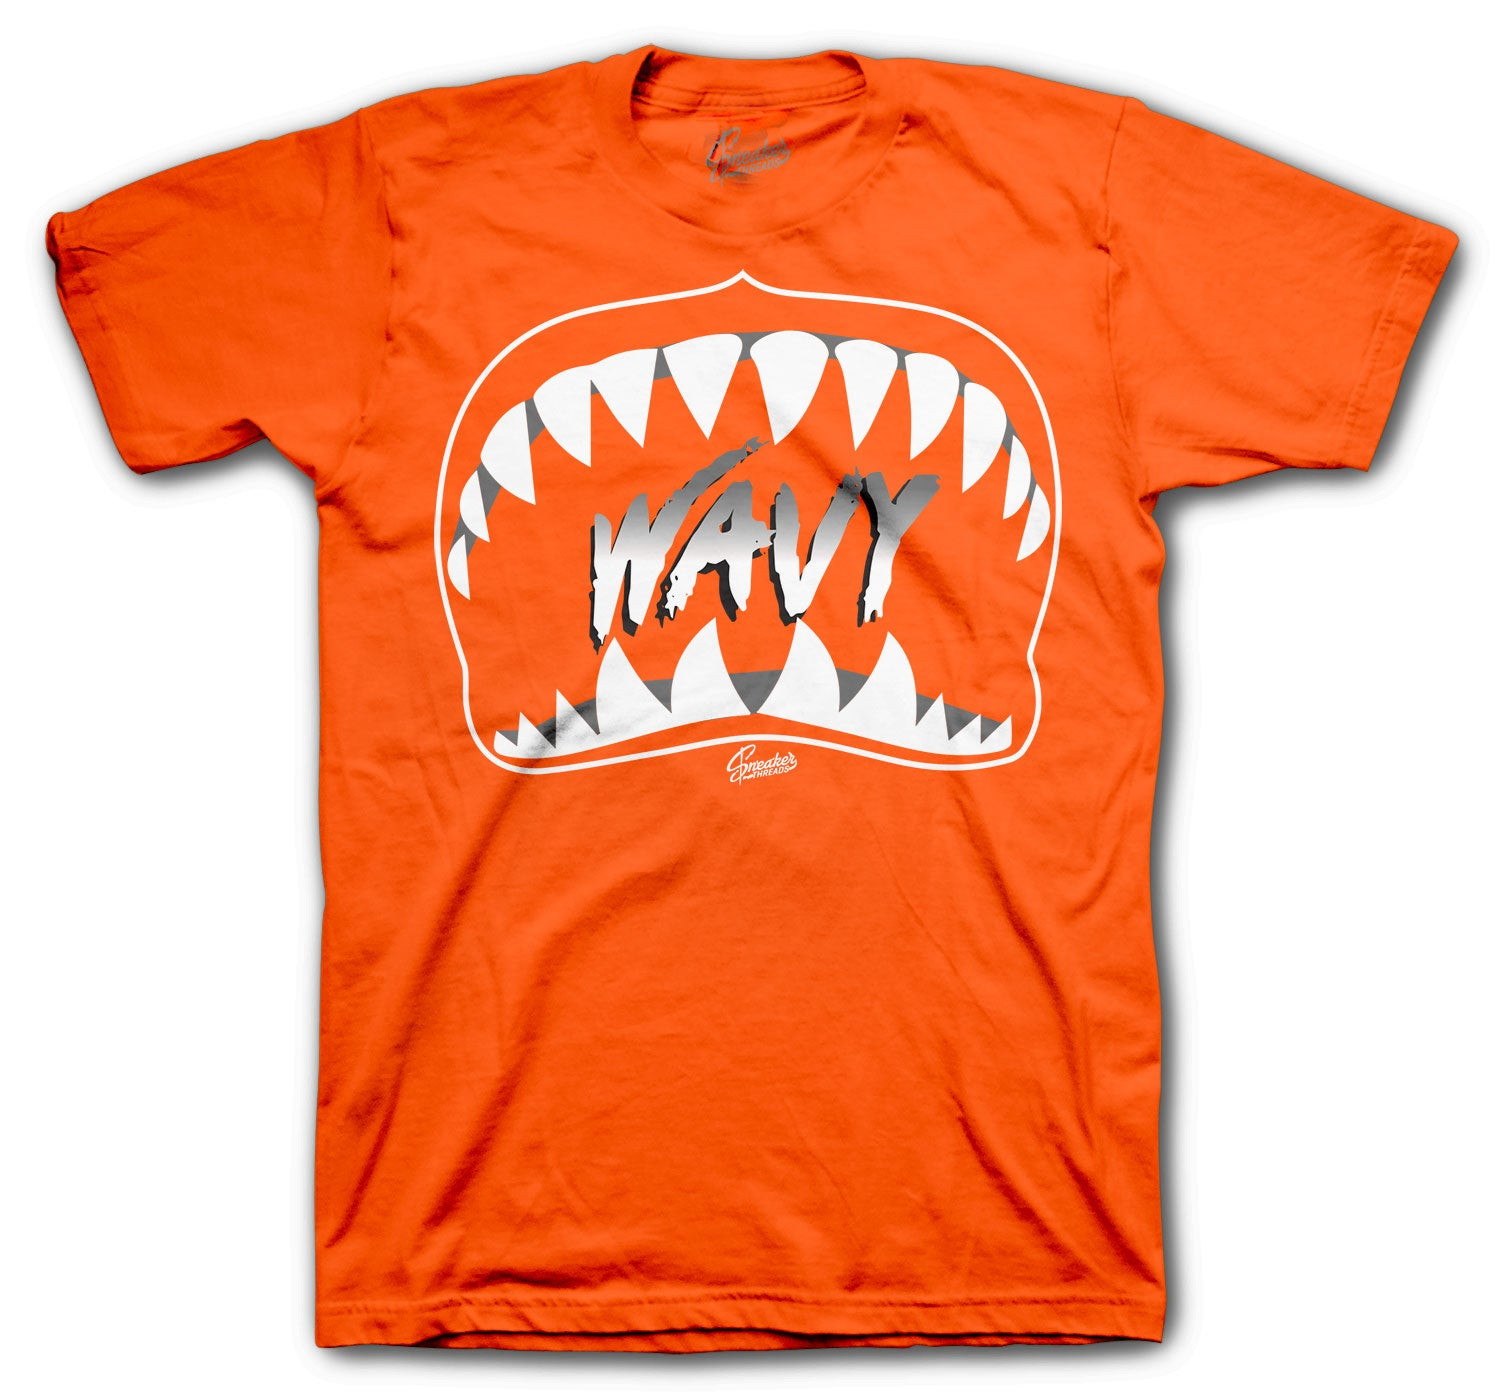 T shirt collection matches with sneaker collection Jordan  4 Metallic Orange Sneaker collection